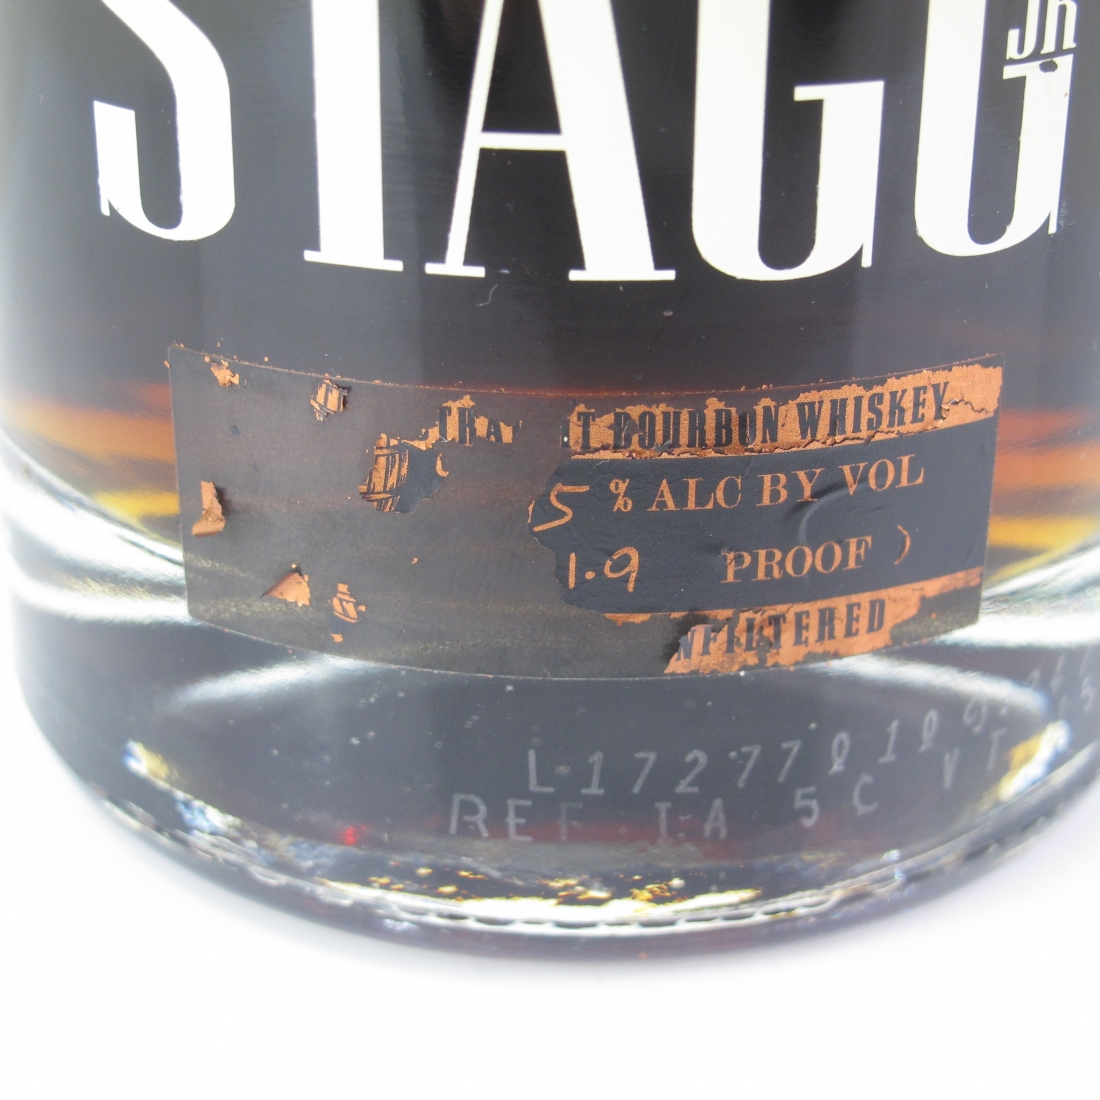 Stagg Jr Kentucky Bourbon Batch #009